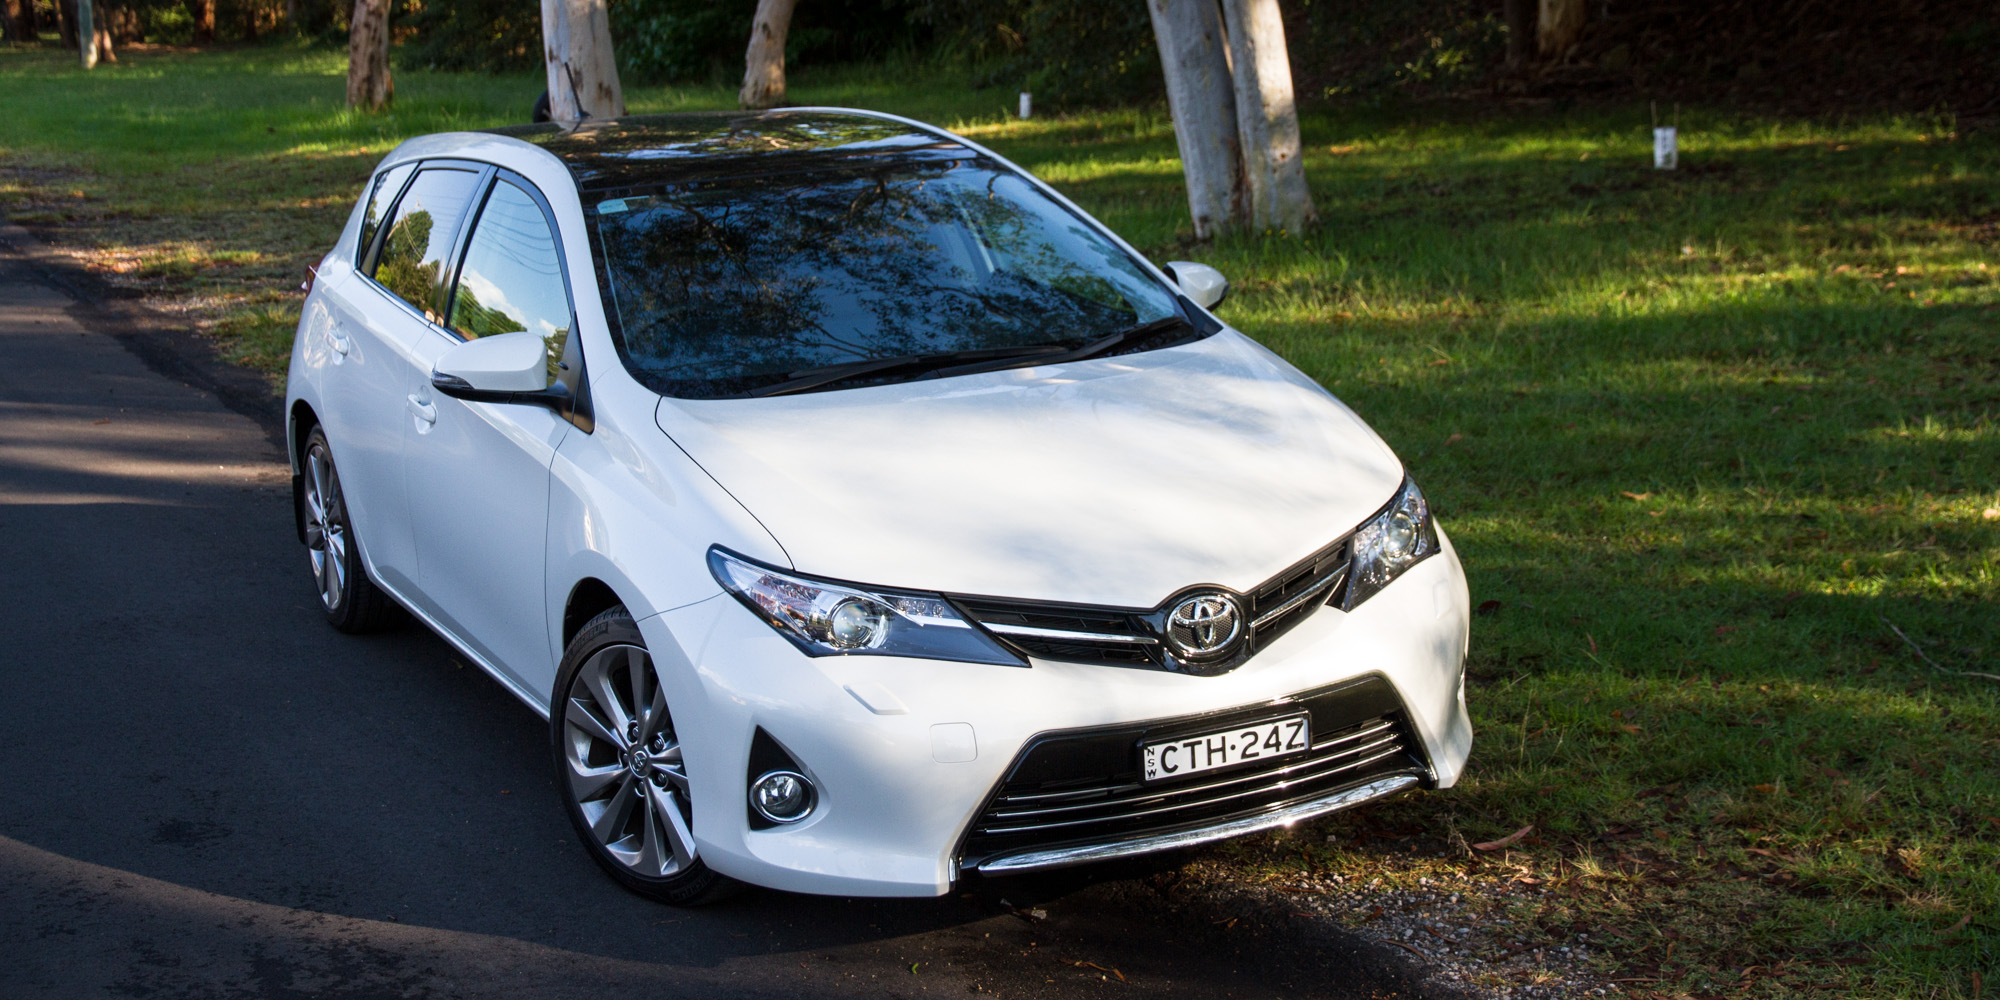 2015 Toyota Corolla Levin Zr Review Long Term Report One Caradvice